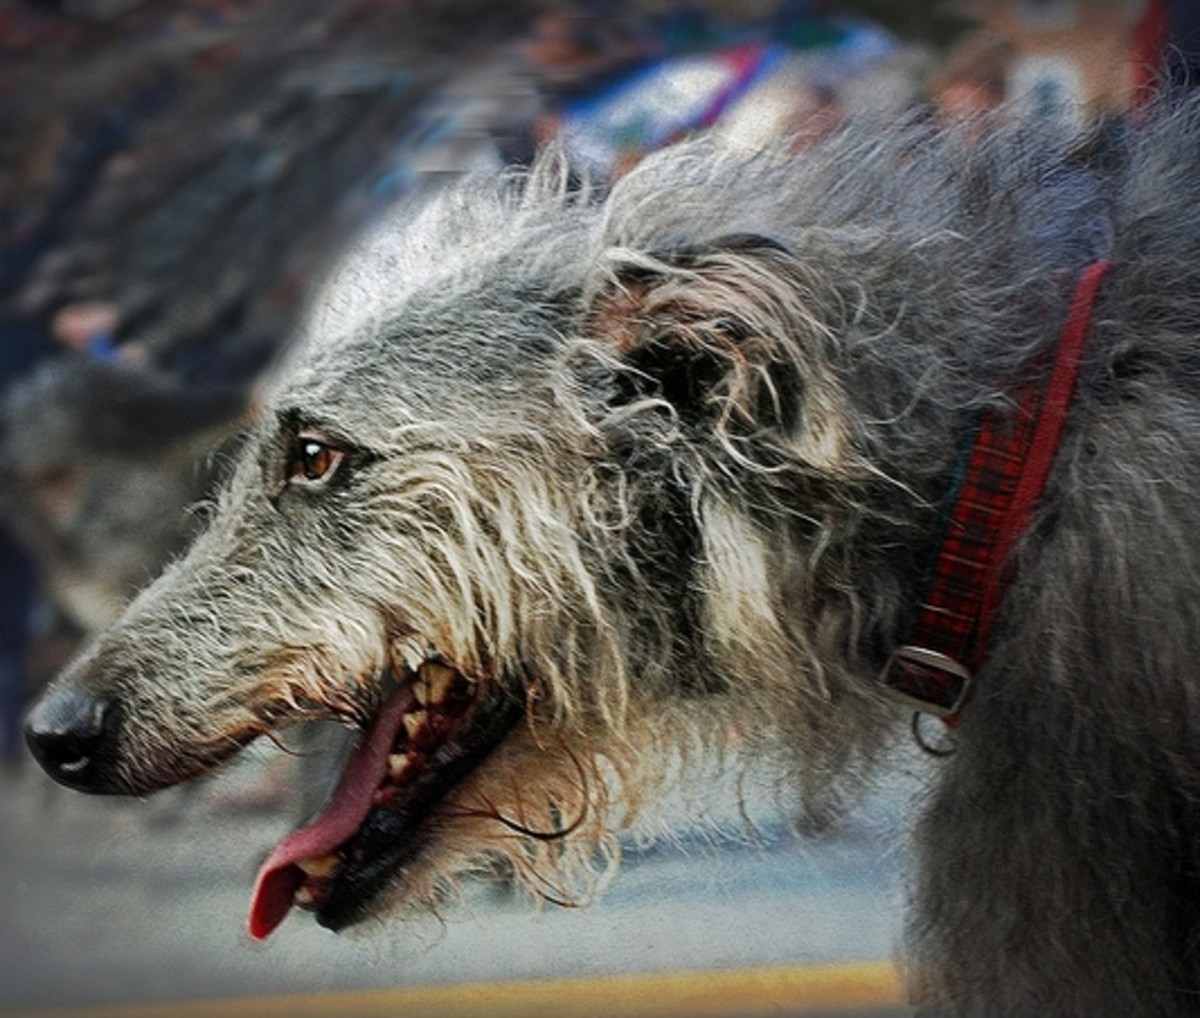 Scottish Deerhound look a lot like Greyhounds.